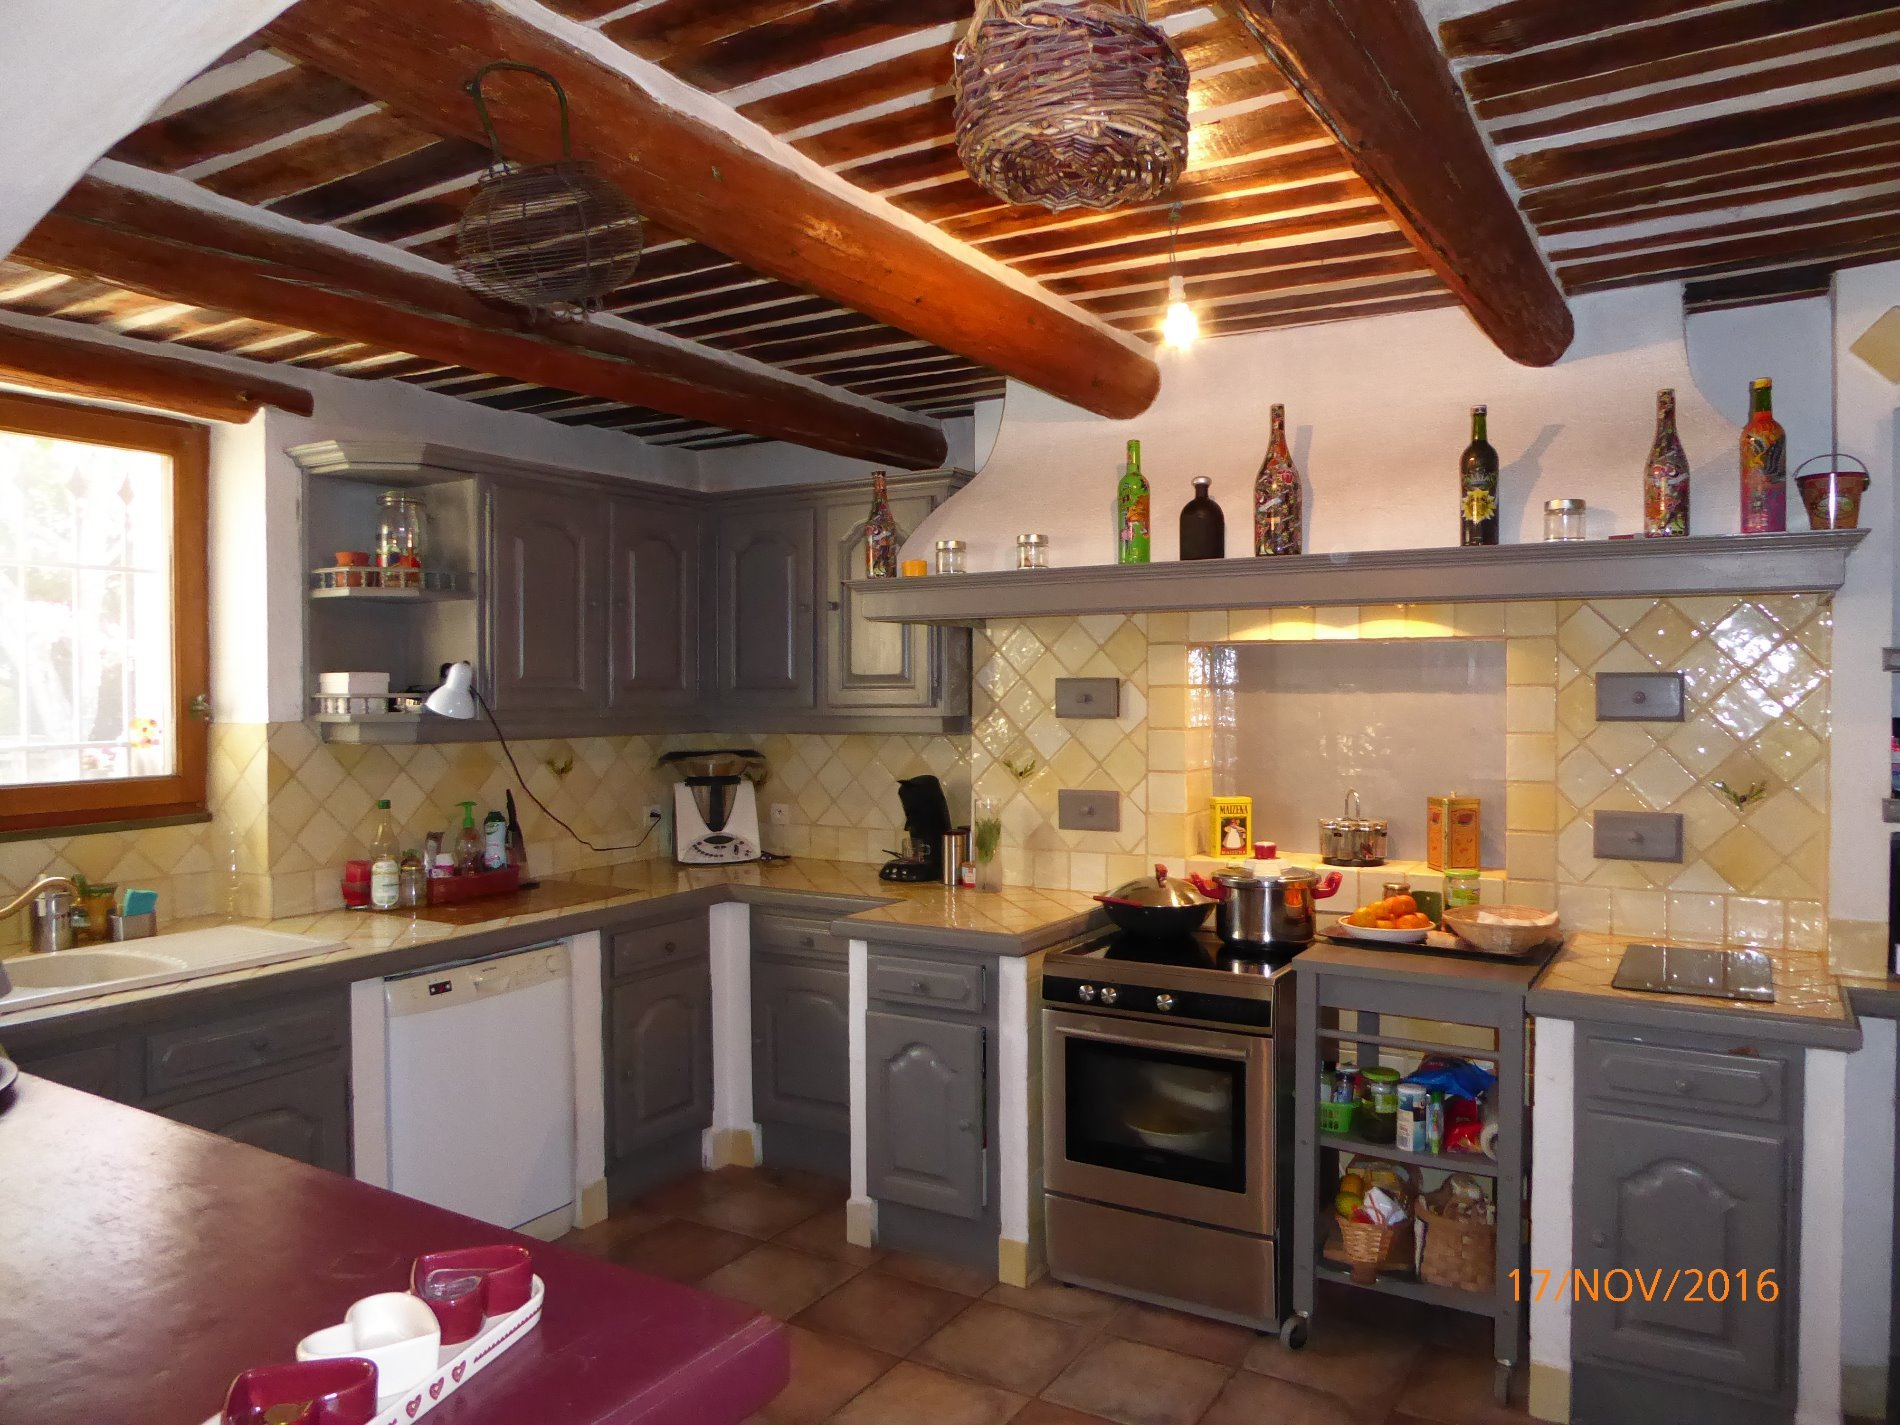 SAINT-REMY 10mn Mas completely renovated with guard house currently rented. Pool, pool house, MP